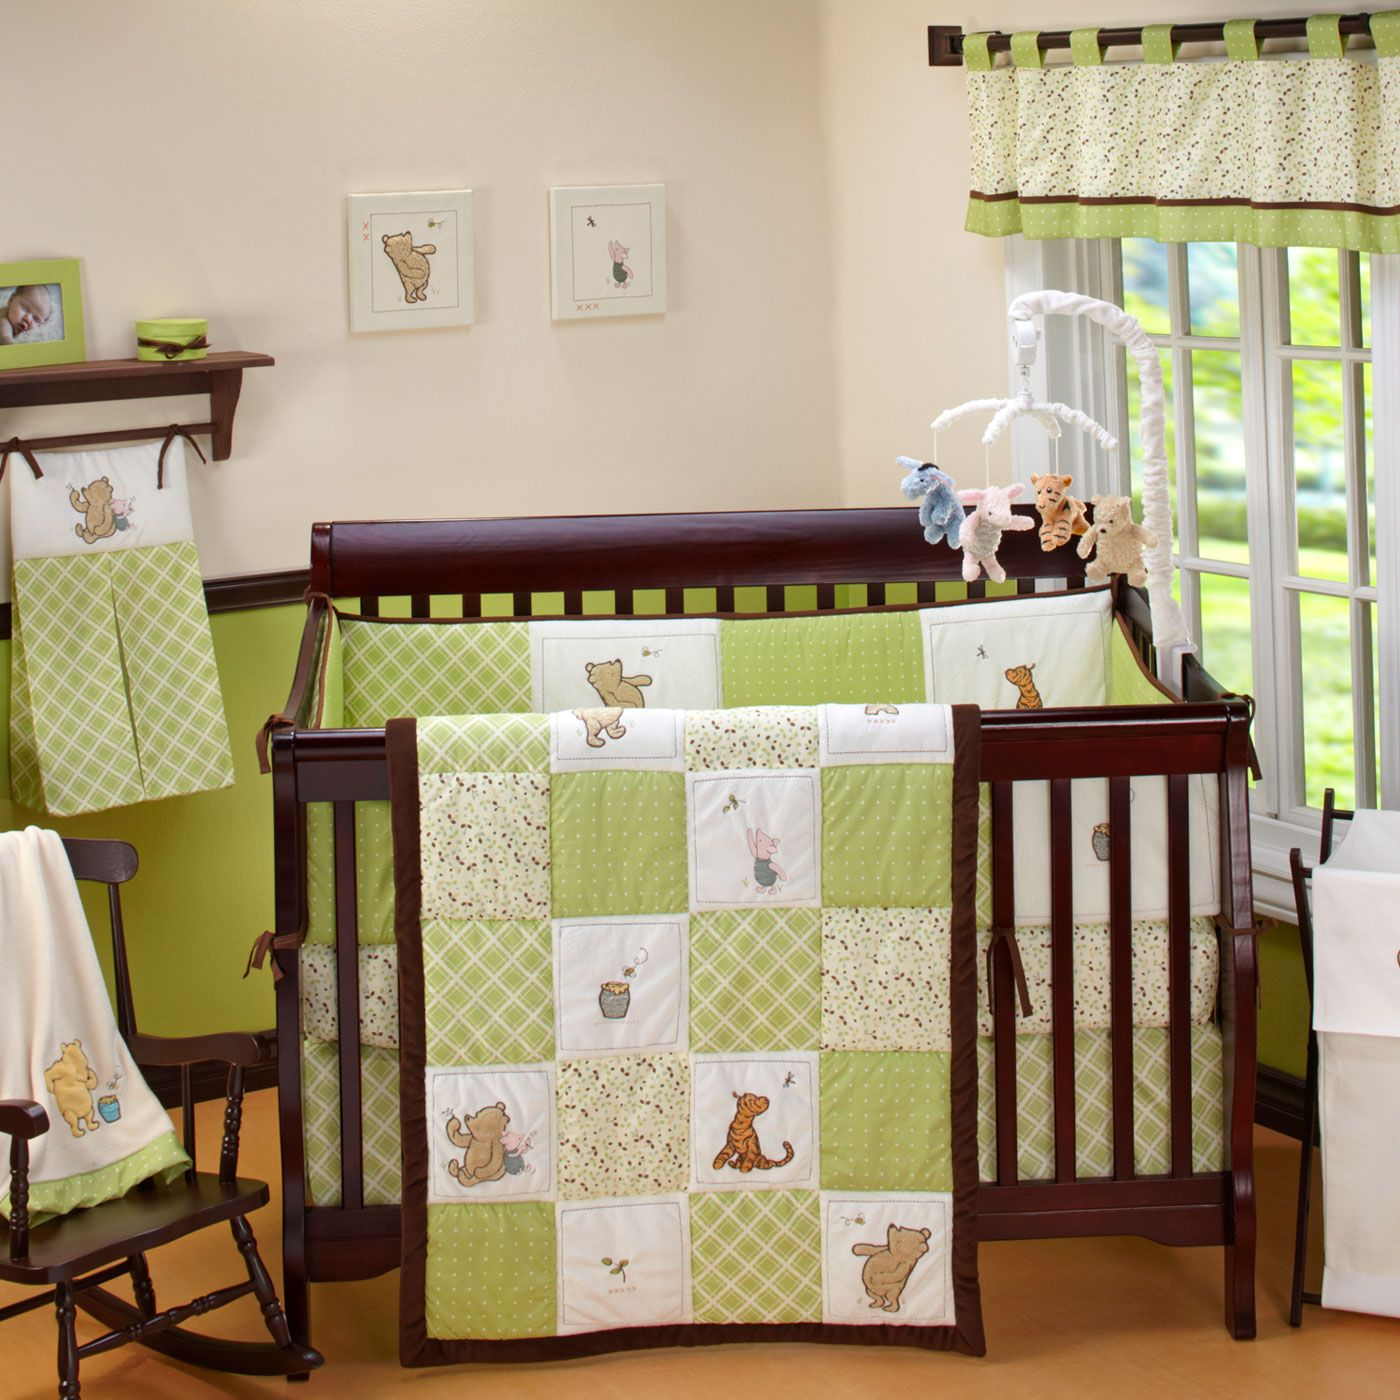 Winnie the pooh toddler bedding - My Friend Pooh Bedding Set This Is How I Would Like To Do Connors Room I Love The Classic Winnie The Pooh